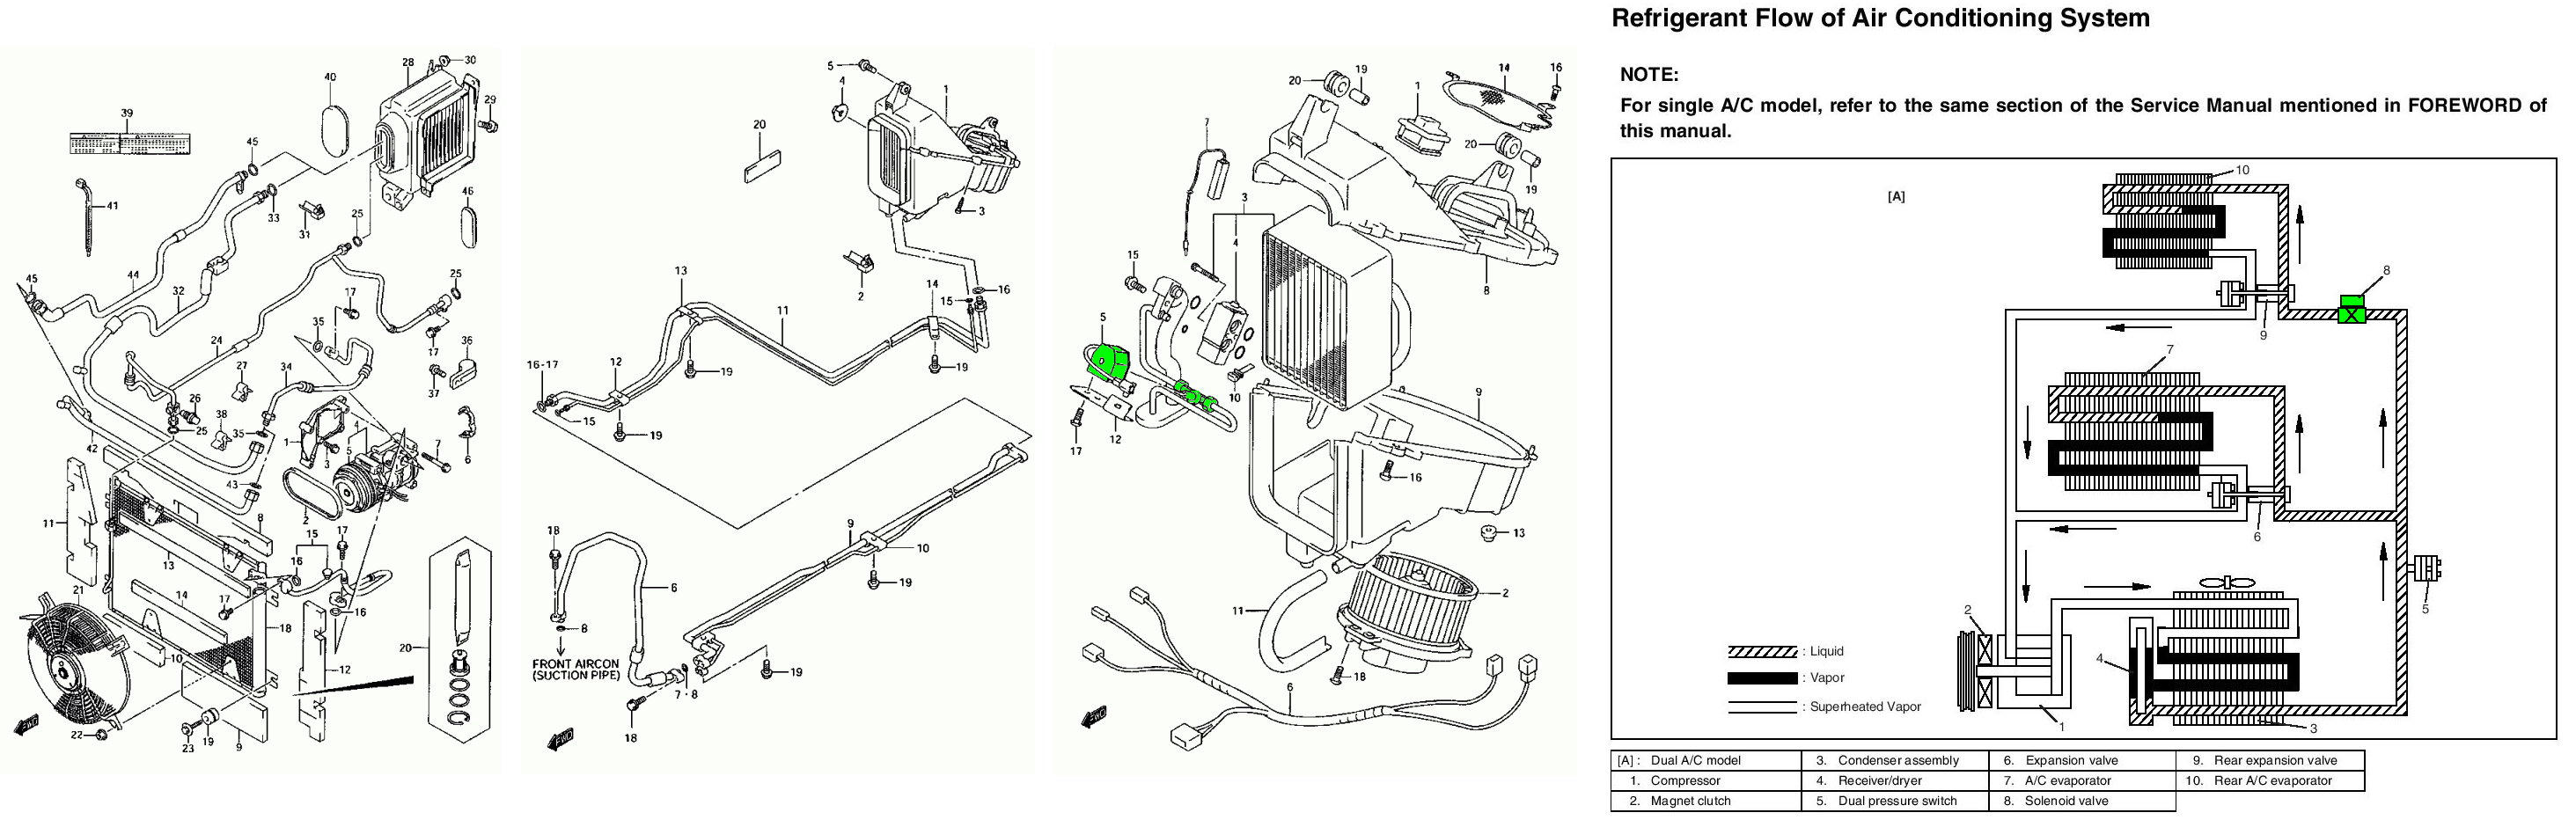 Engine likewise Steering System Issues Can Lead To Rack Leaks in addition FordPartPics further Watch further 22263286. on 2006 ford taurus vacuum diagram